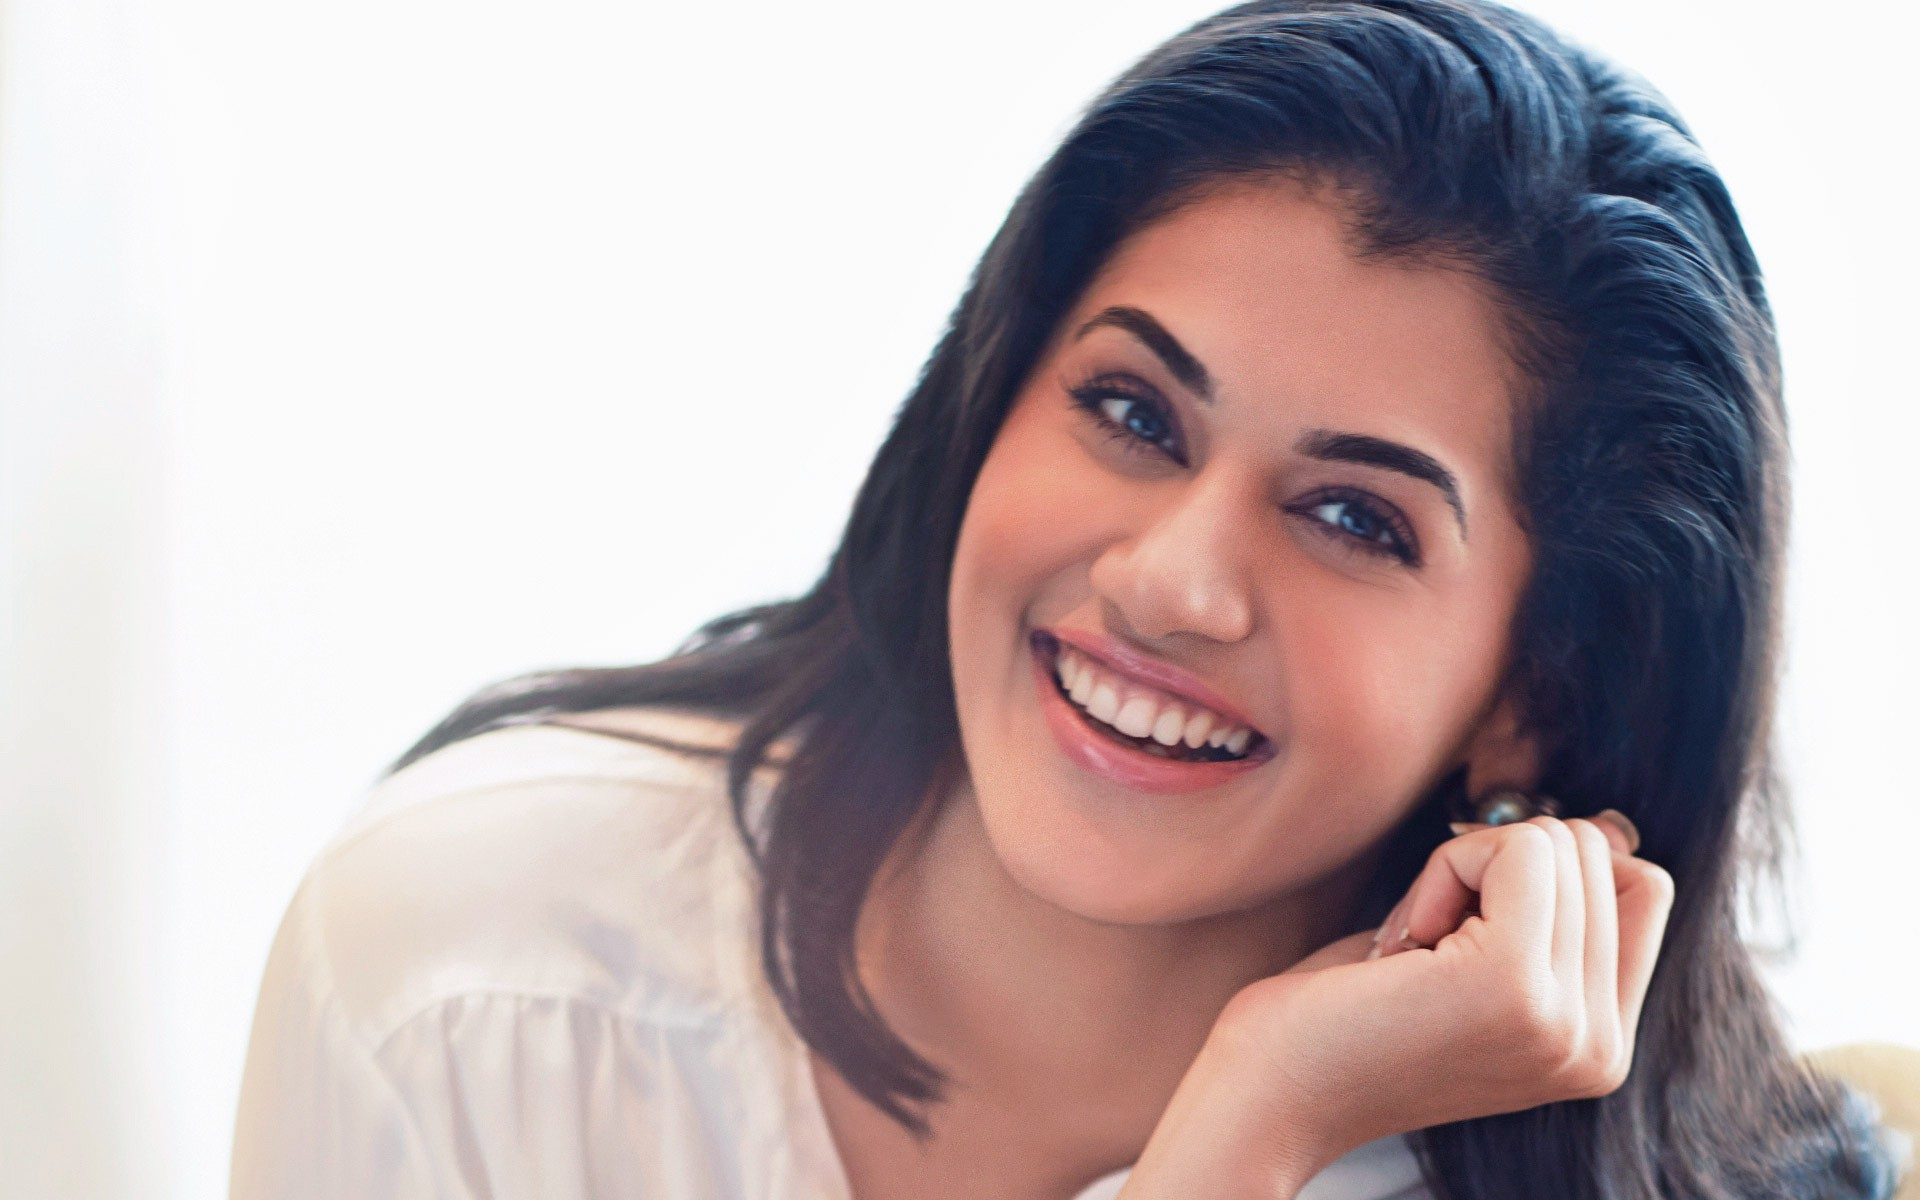 Photos for free Taapsee, indian celebrities, girls - to the desktop